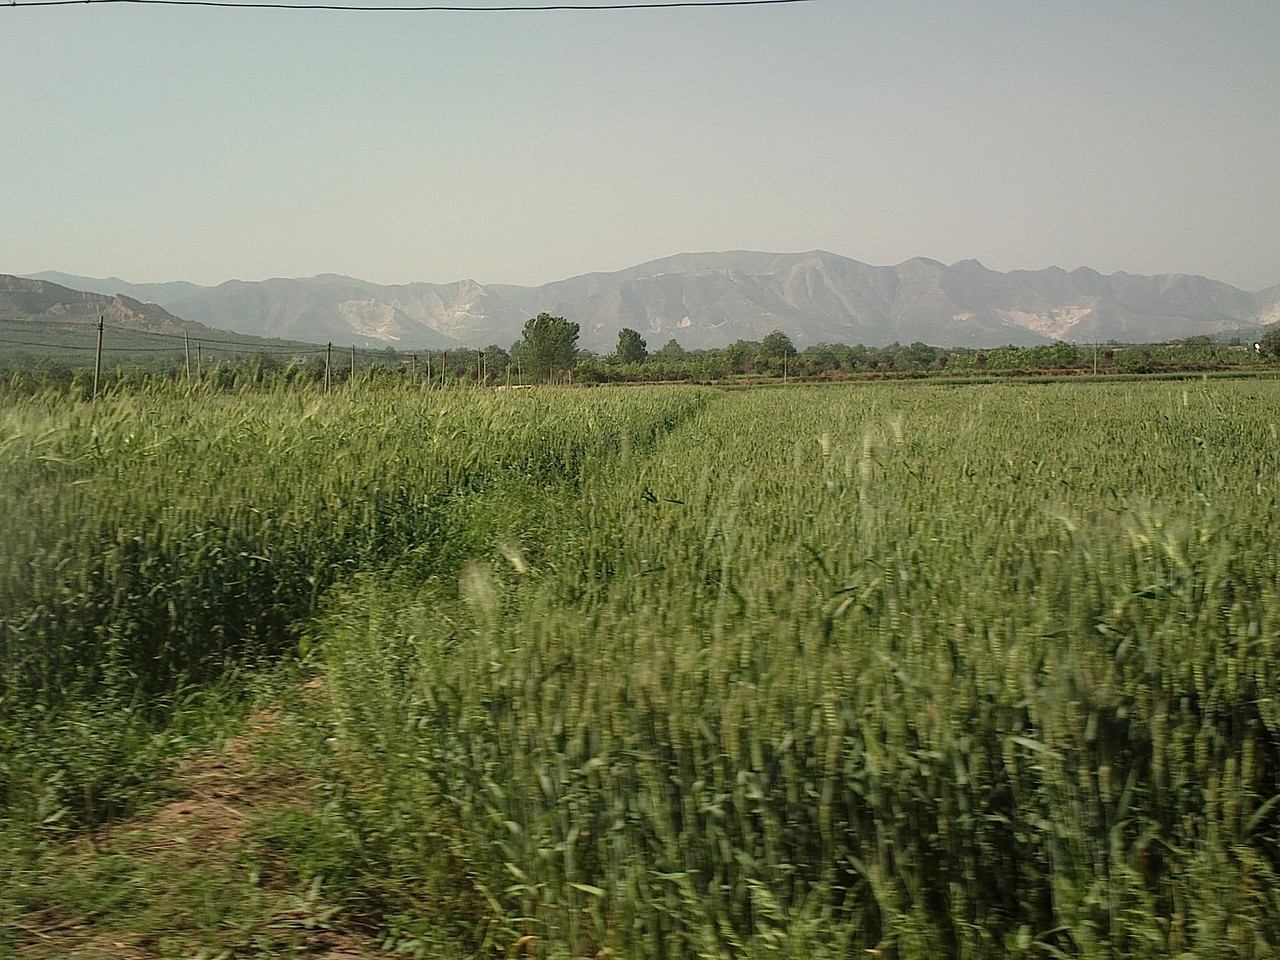 20130510_1535_0146 Fuping 富平 county, Shaanxi 陕西. Wheat fields